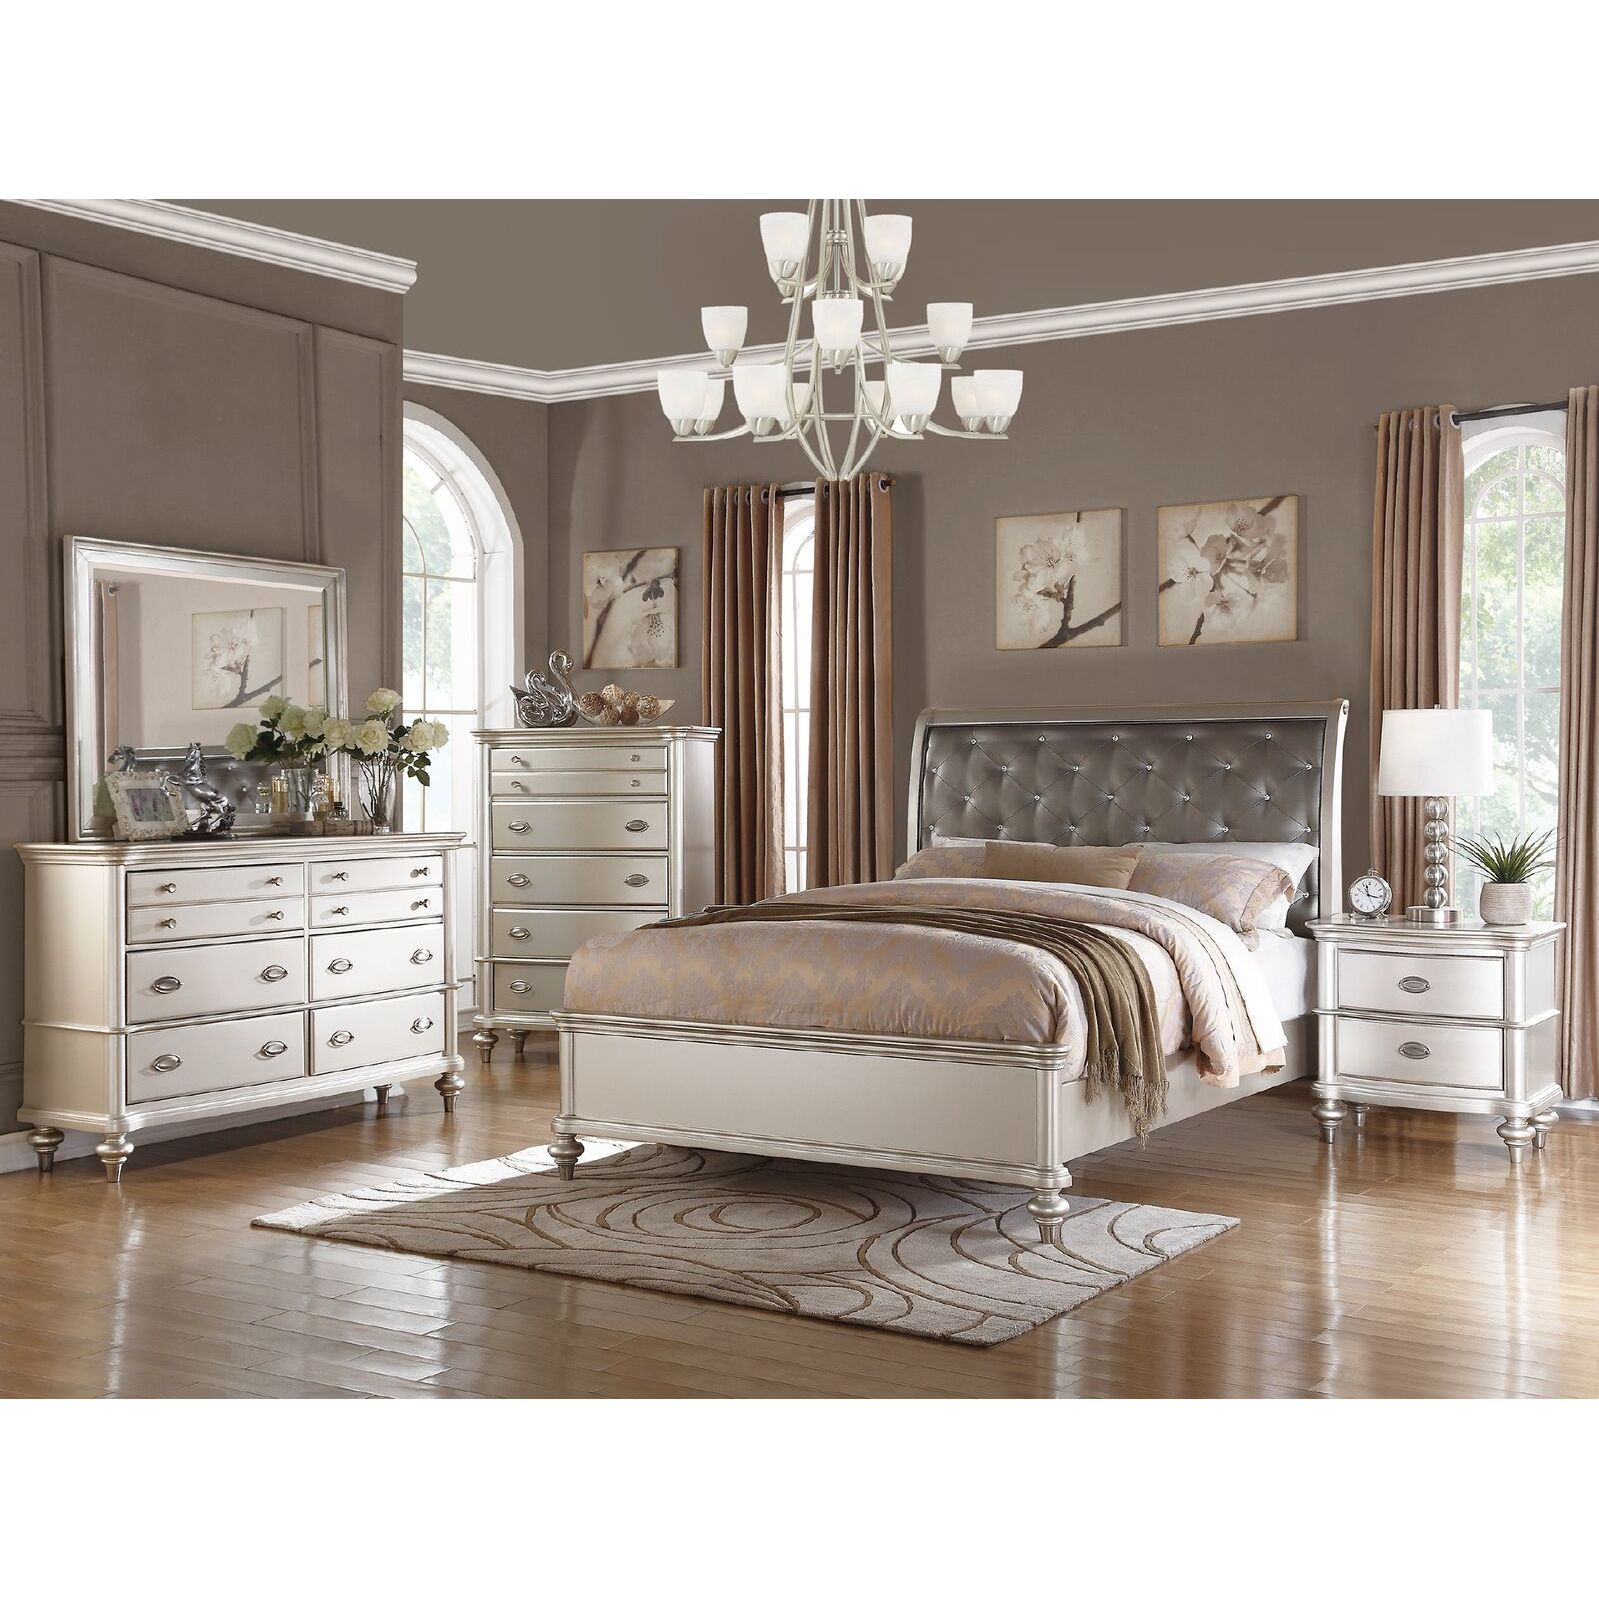 Shop saveria 6 piece silver bedroom furniture set free shipping on orders over 45 overstock com 12917234